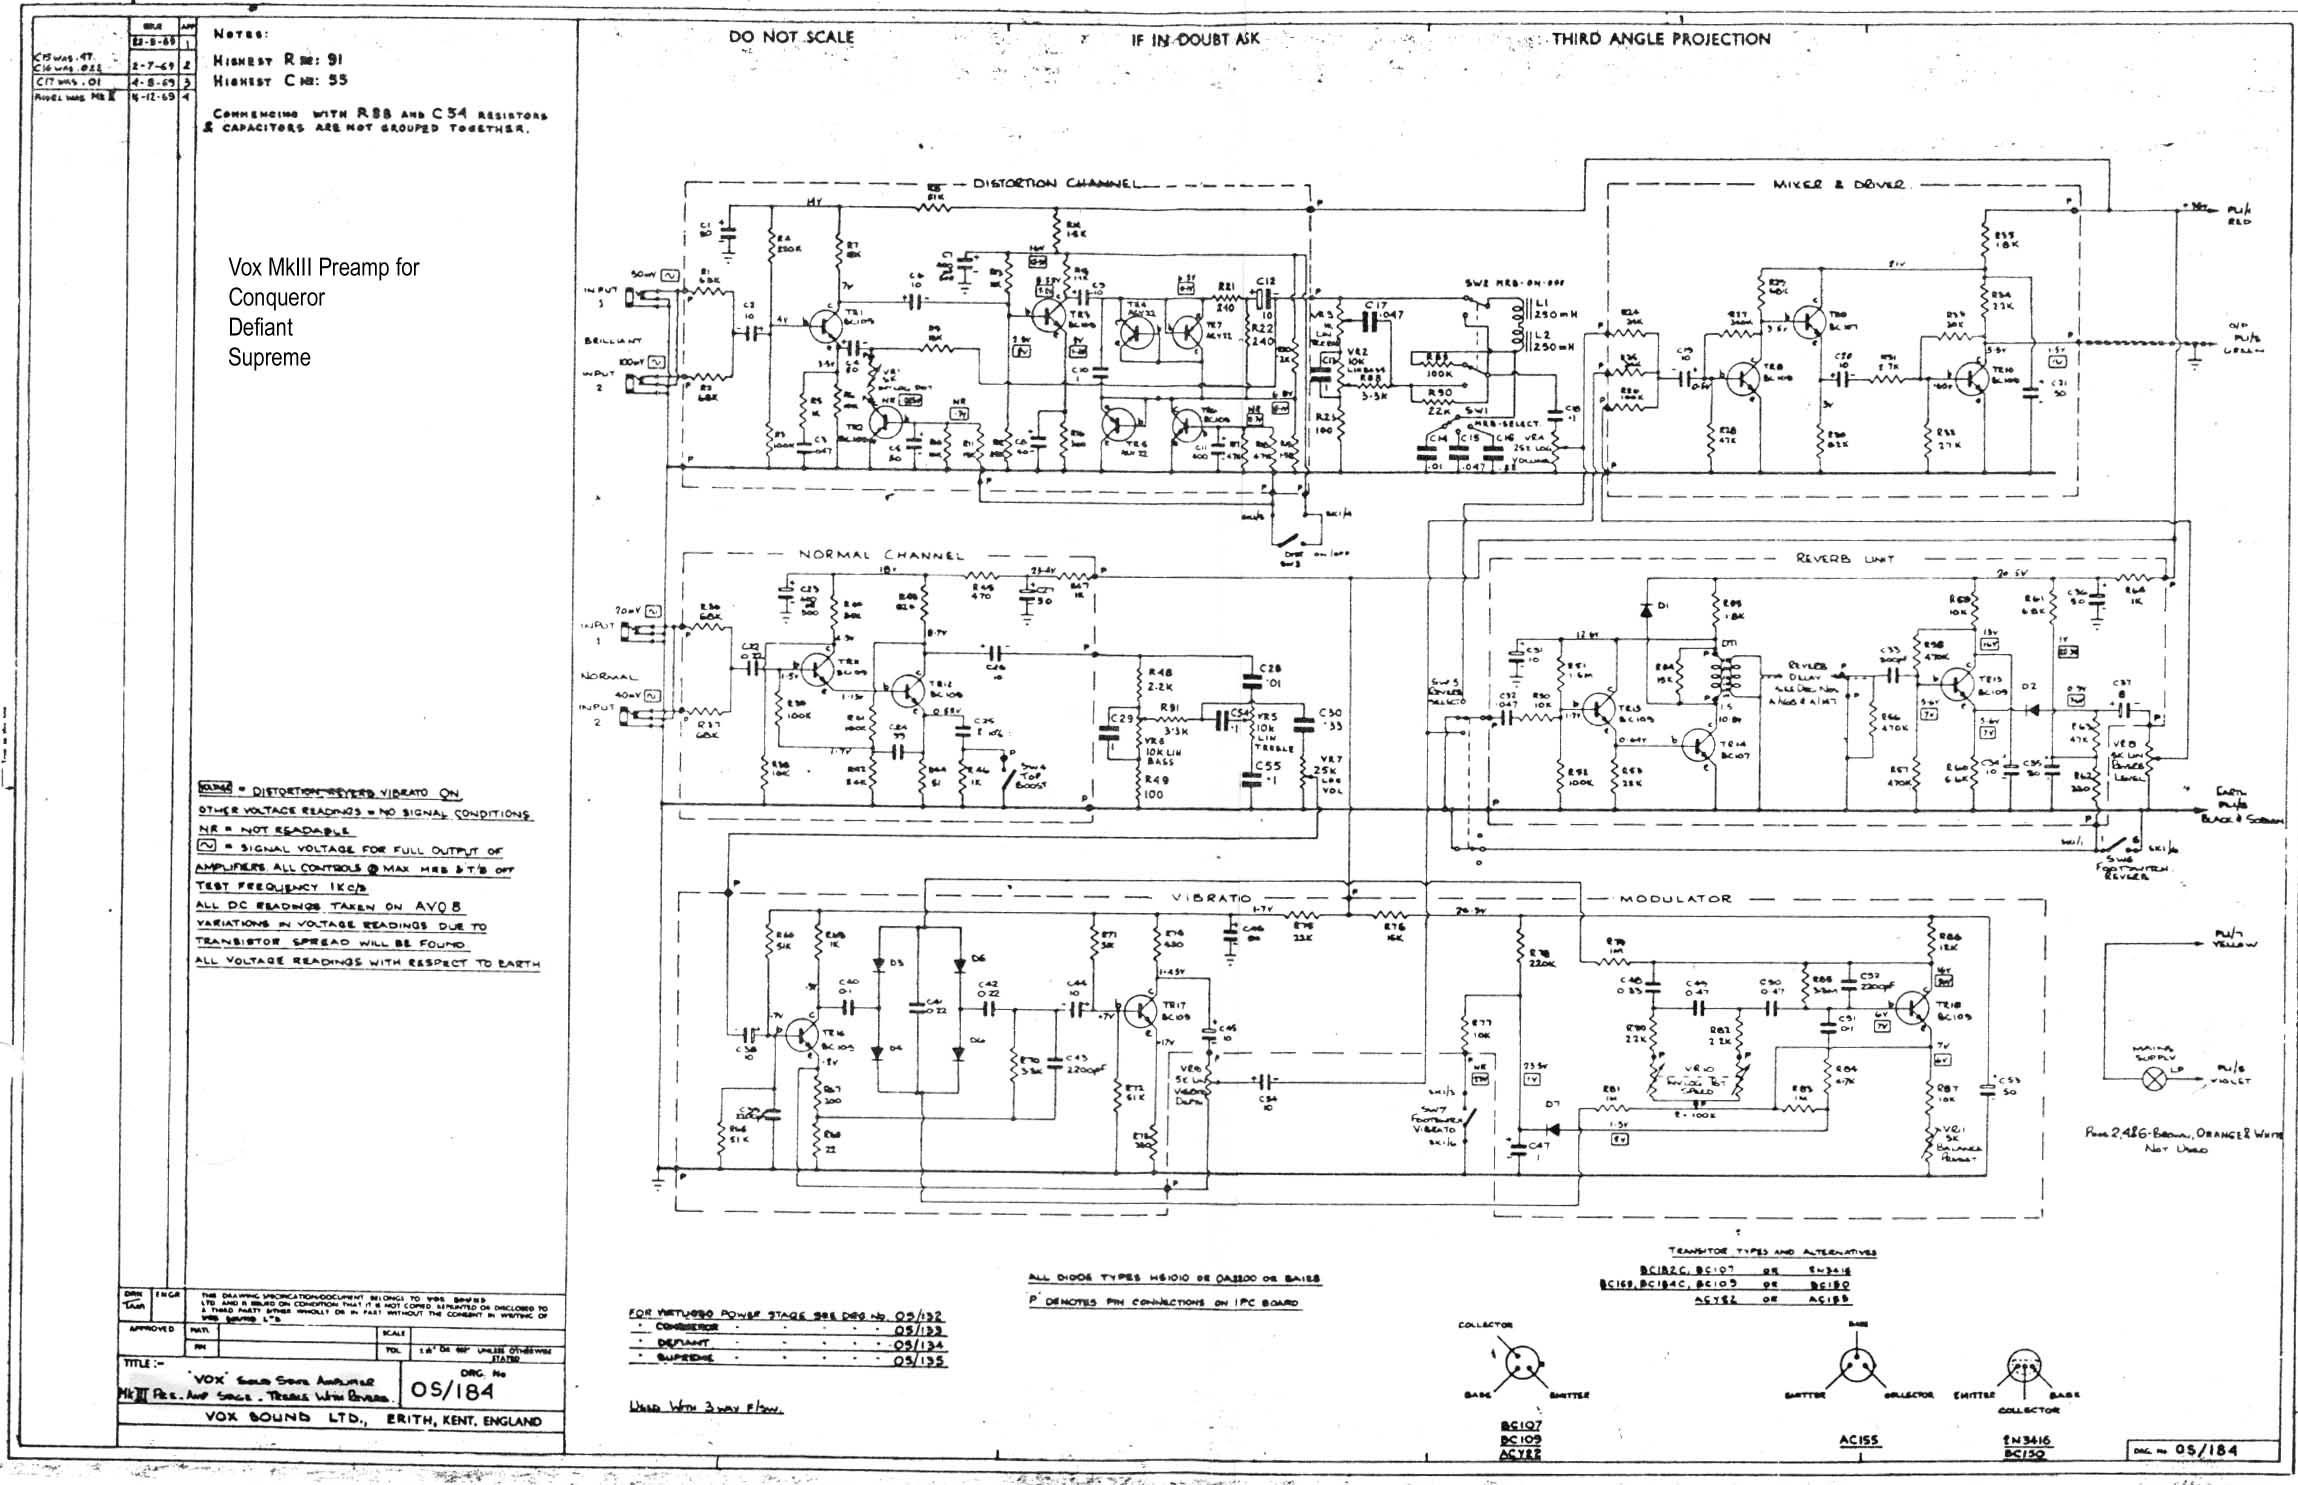 mkiiipre vox vintage circuit diagrams server wiring diagram at n-0.co